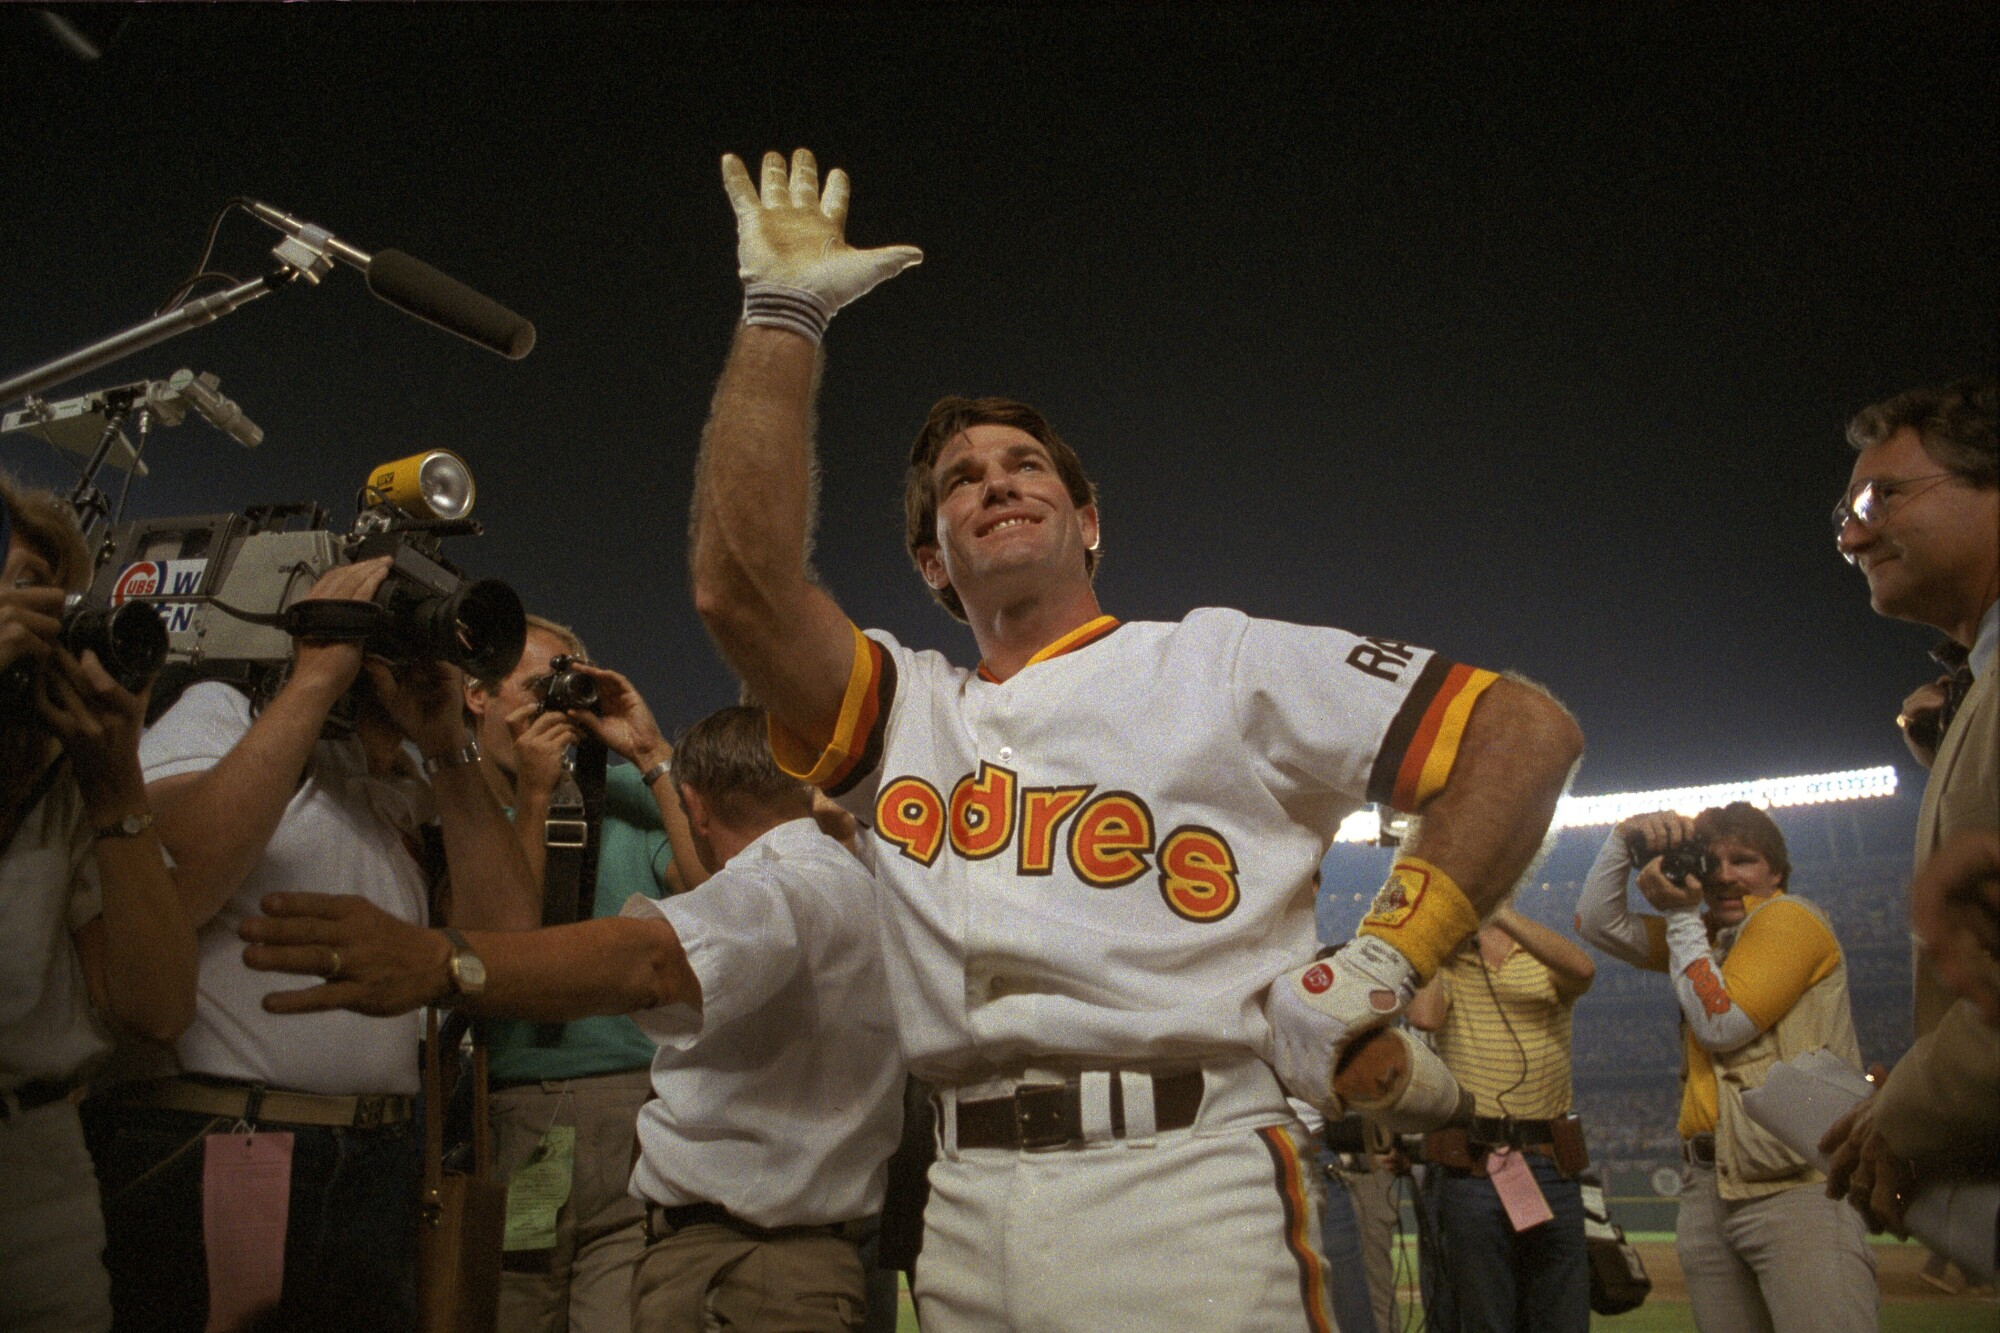 Steve Garvey waves while sporting the Padres' uniform from 1984, when they went to the World Series.